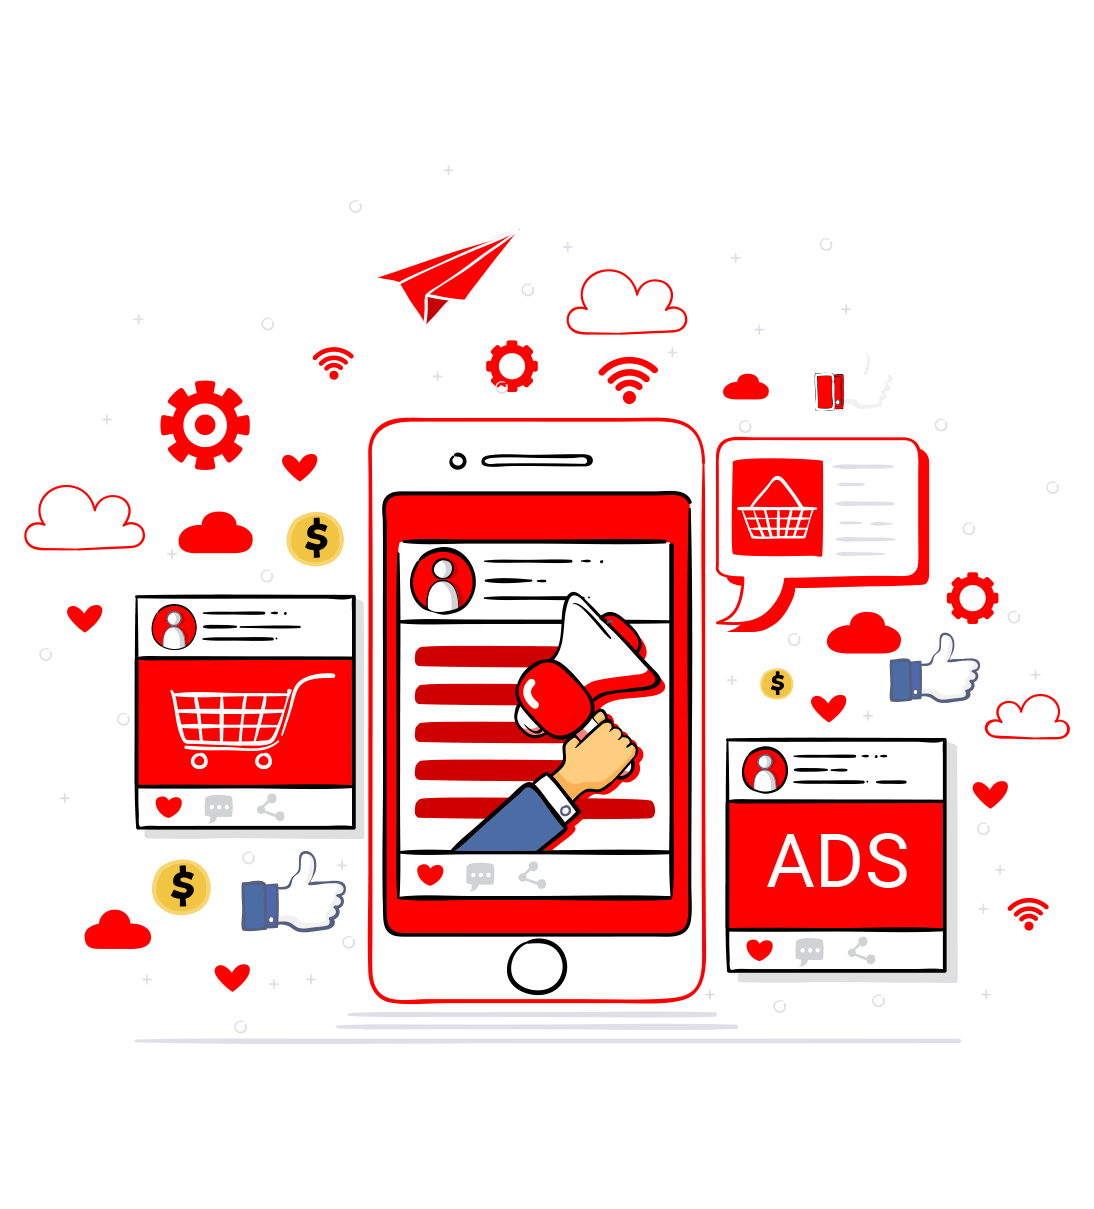 facebook ads manager, facebook ad management packages, facebook ad companies, facebook ad management pricing, facebook advertising agency, facebook ads manager agency, facebook advertising packages, facebook advertising Atlanta, https://iventurebd.com